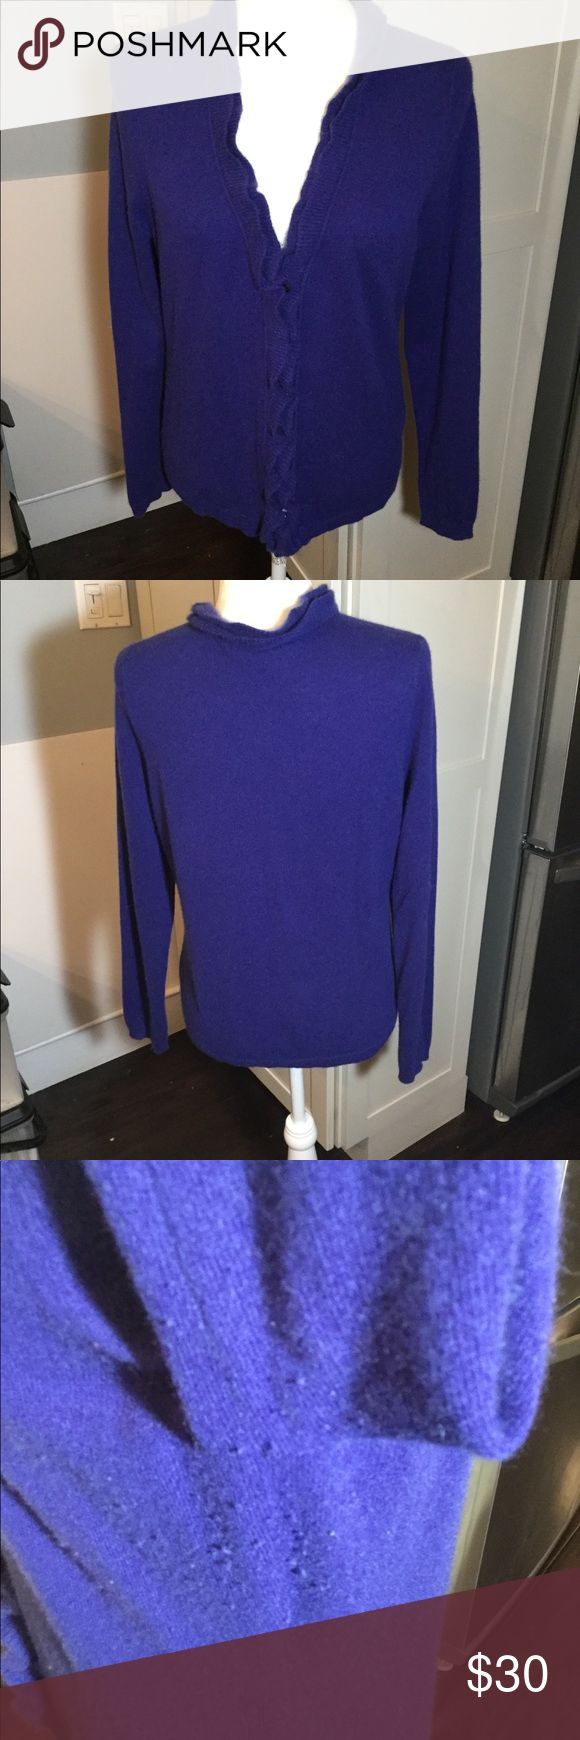 """Garnet Hill Ruffle Trim Cardigan Cashmere Sweater No holes or stains, pilling under arms that I didn't try to remove  Pit to pit flat 19"""" Center back neck down front (not including ruffle at back neck) 22"""" garnet hill Sweaters Cardigans"""